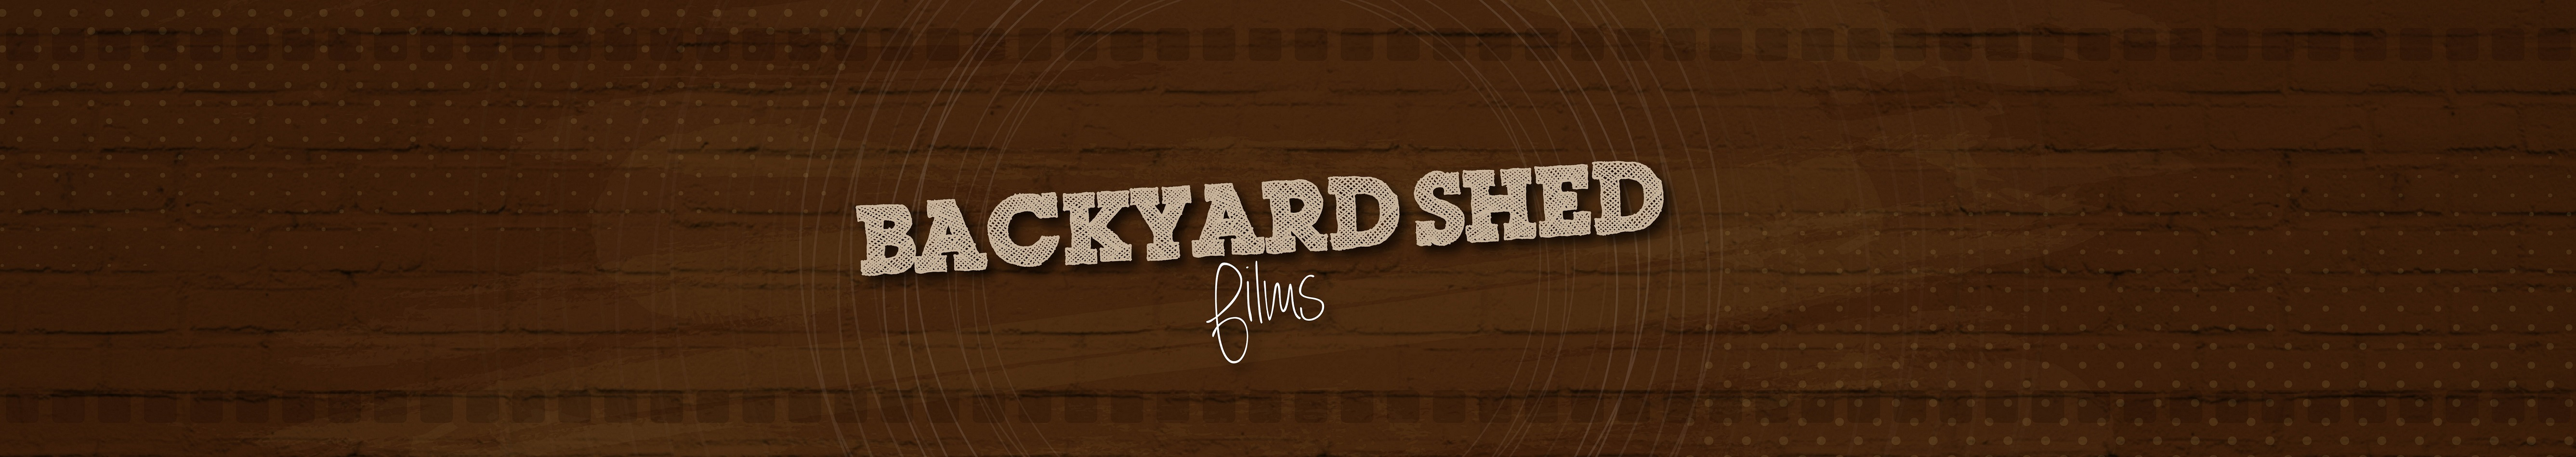 Backyard Shed Films | Video Production, Music Videos, Commercials, and Post-production